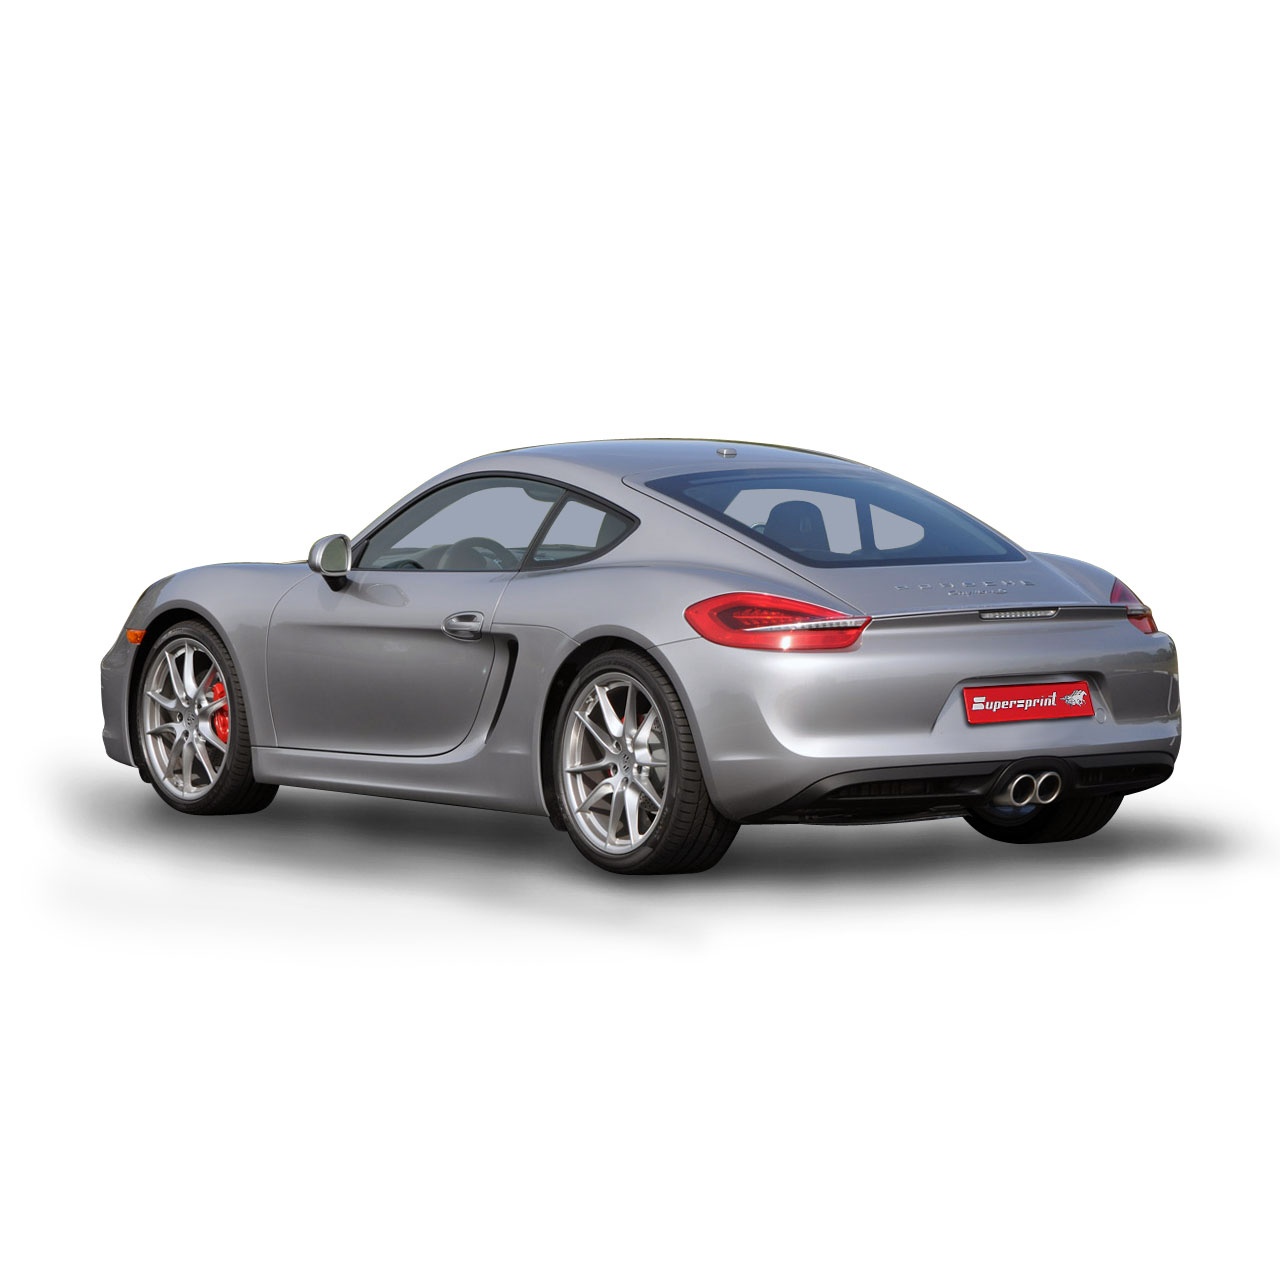 porsche boxster s 981 sound with supersprint valvetronic exhaust official videos. Black Bedroom Furniture Sets. Home Design Ideas